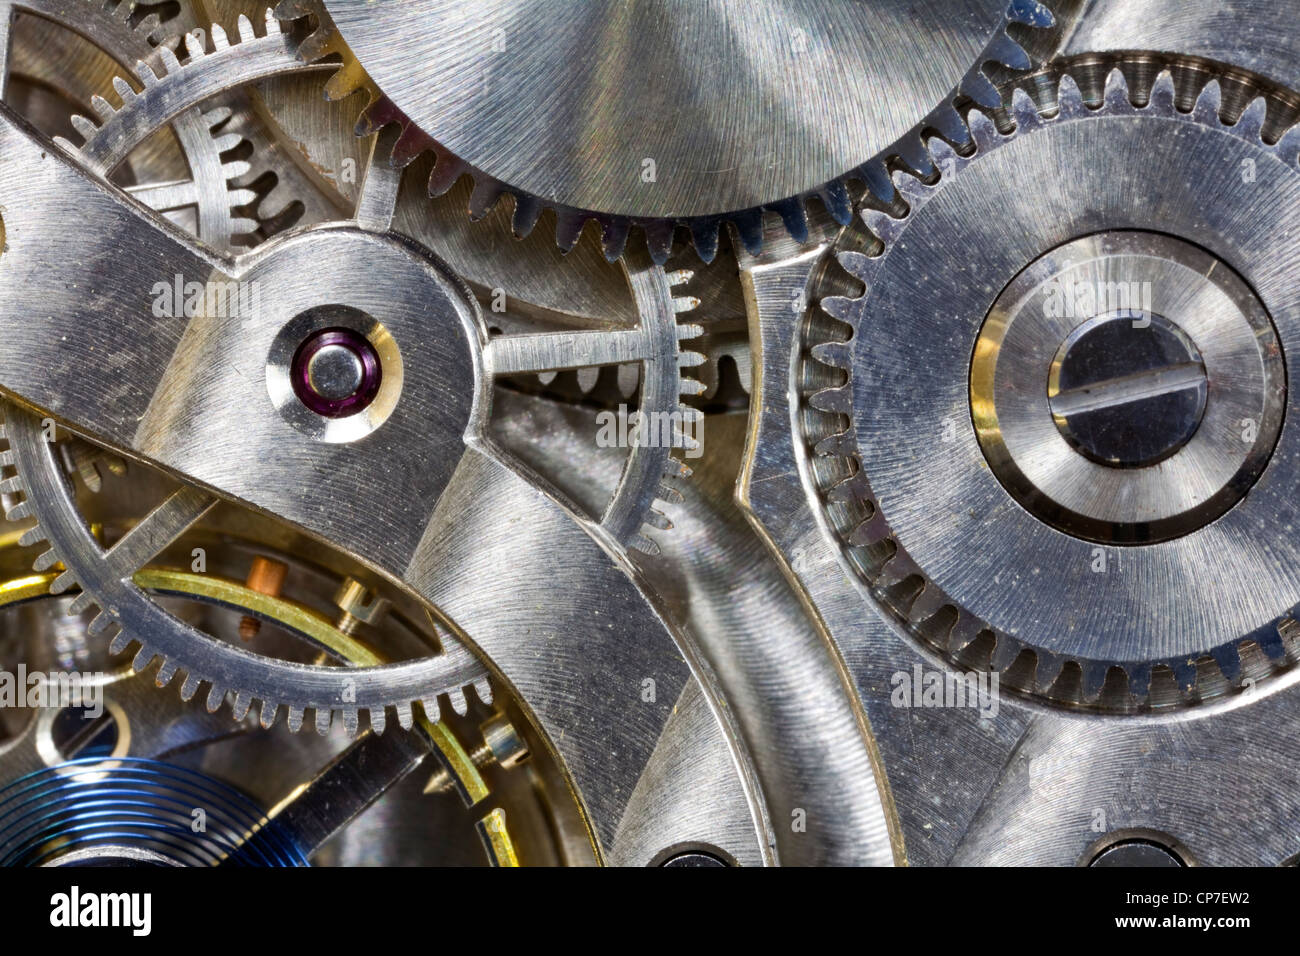 Vintage pocket watch inside gears macro detail. - Stock Image